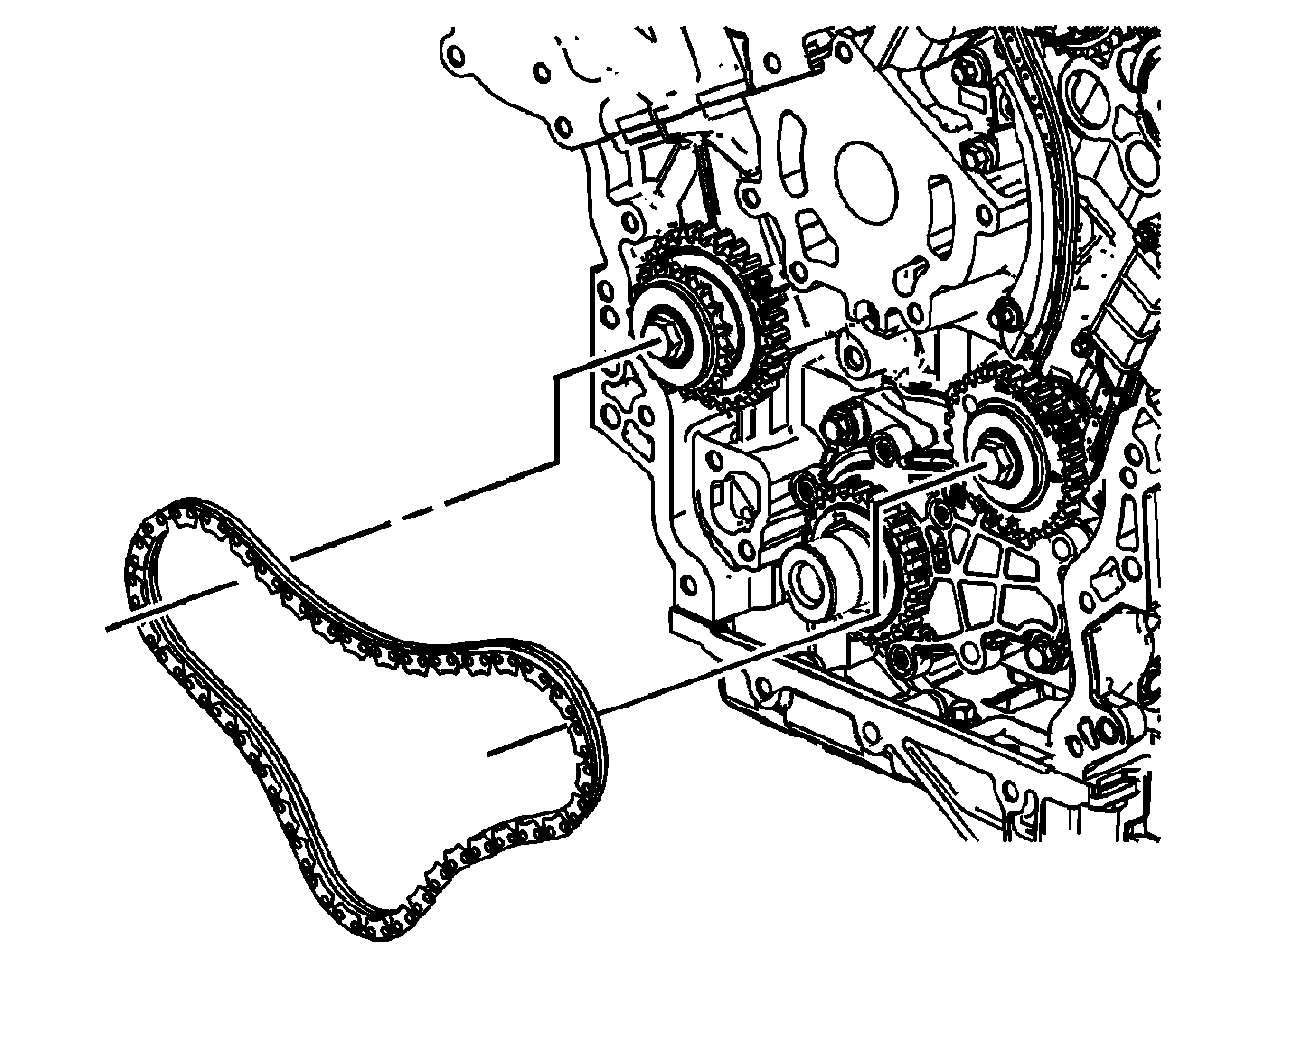 02 Suzuki Xl7 Engine Diagram